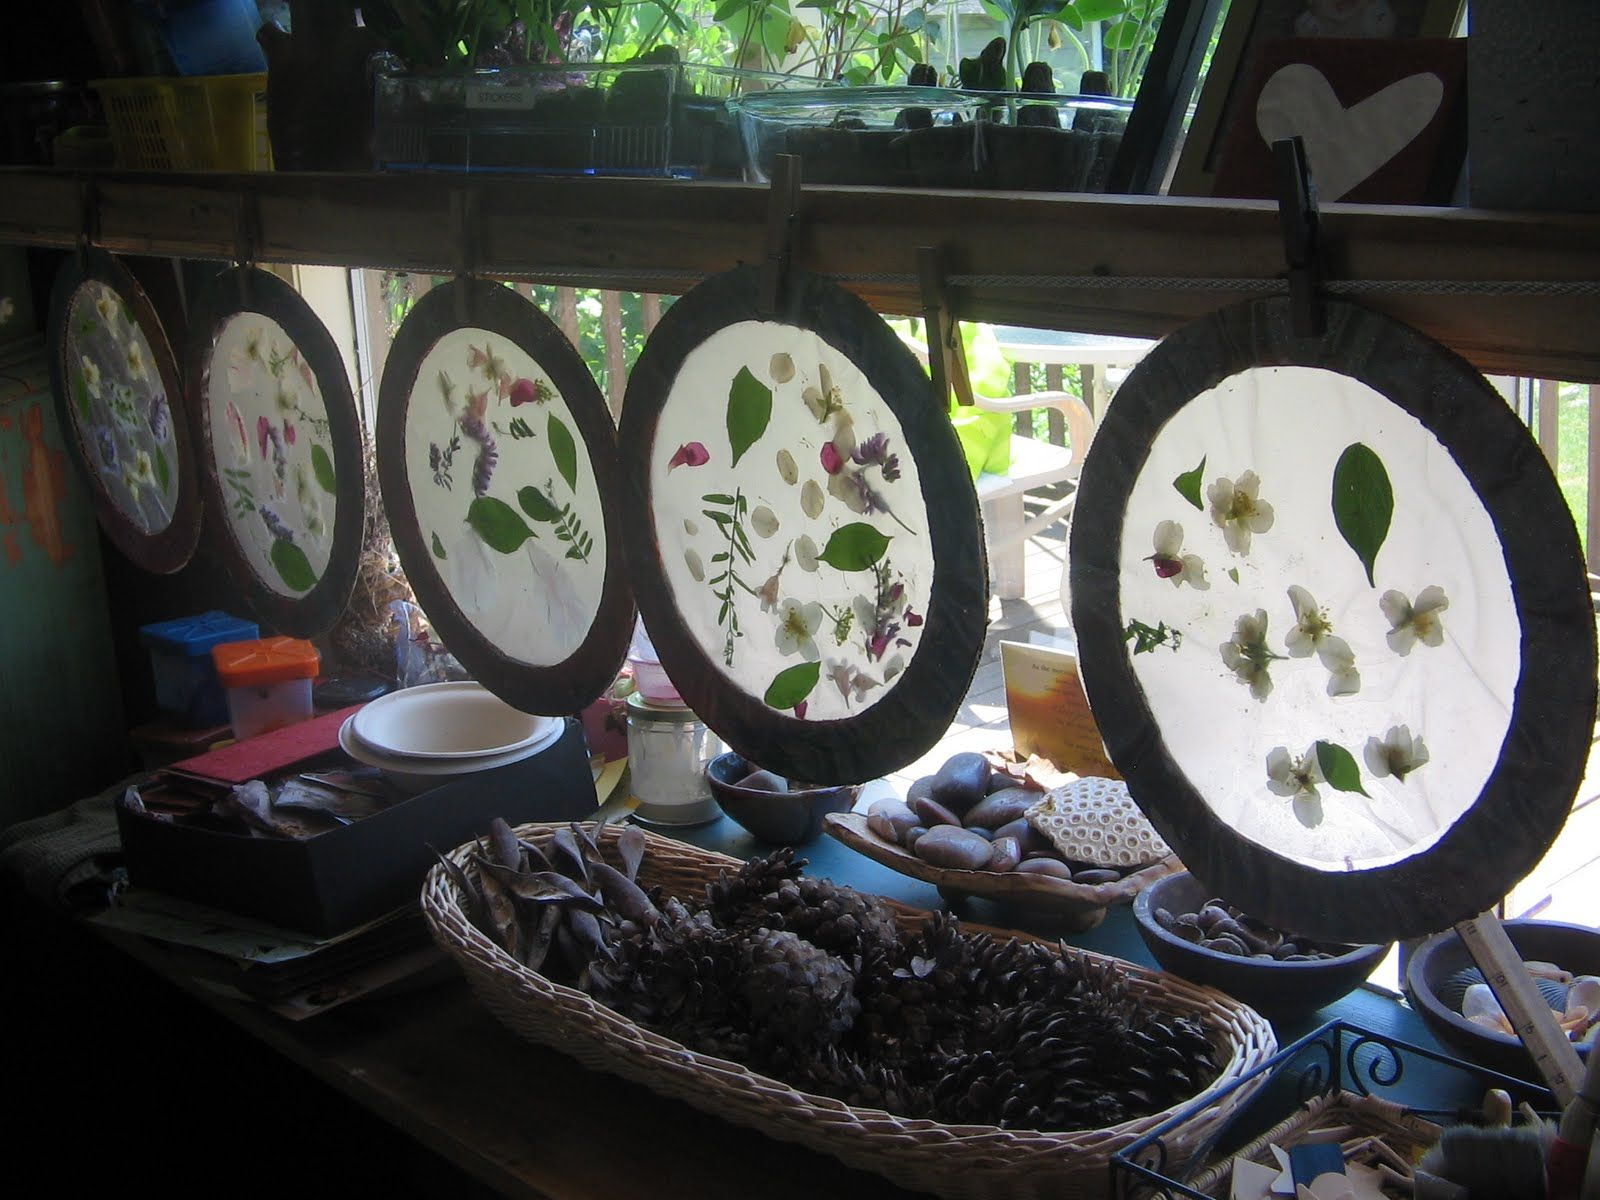 Nature Sun Catchers You Need Heavy Card Stock Or Cardboard Tracing Paper Flower Petals